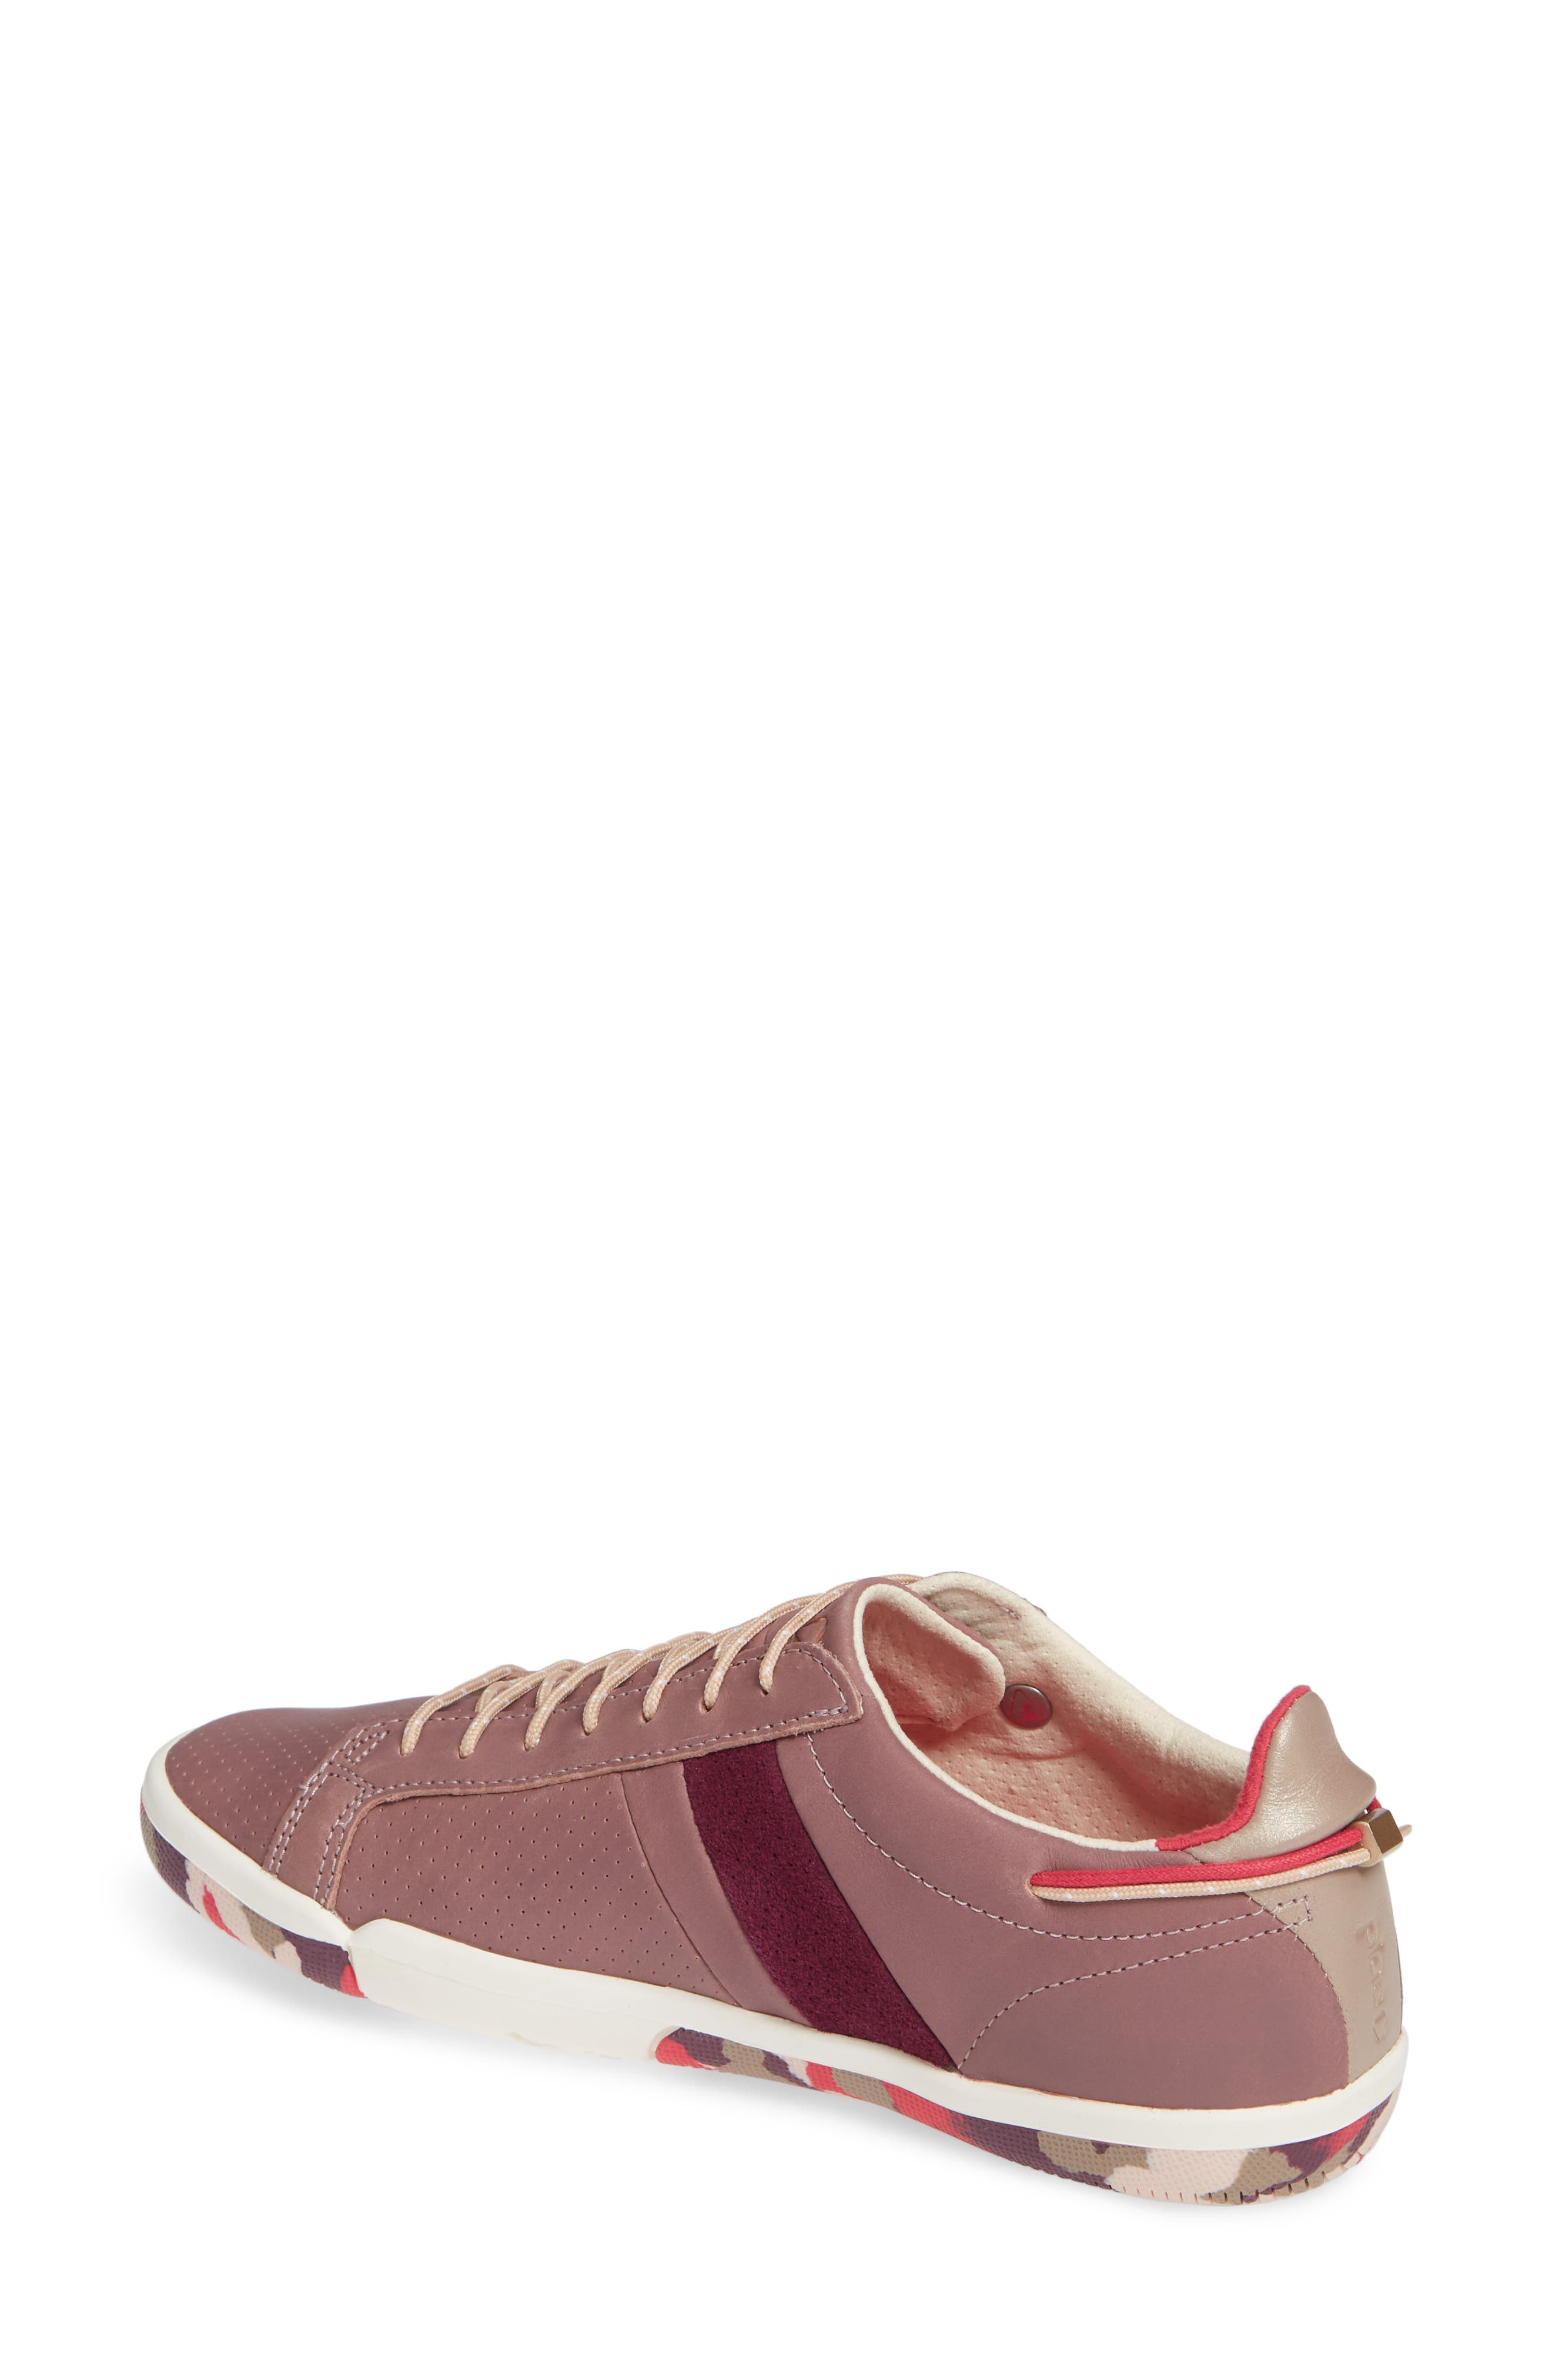 Mulberry Sneaker,                             Alternate thumbnail 2, color,                             SILTSTONE LEATHER